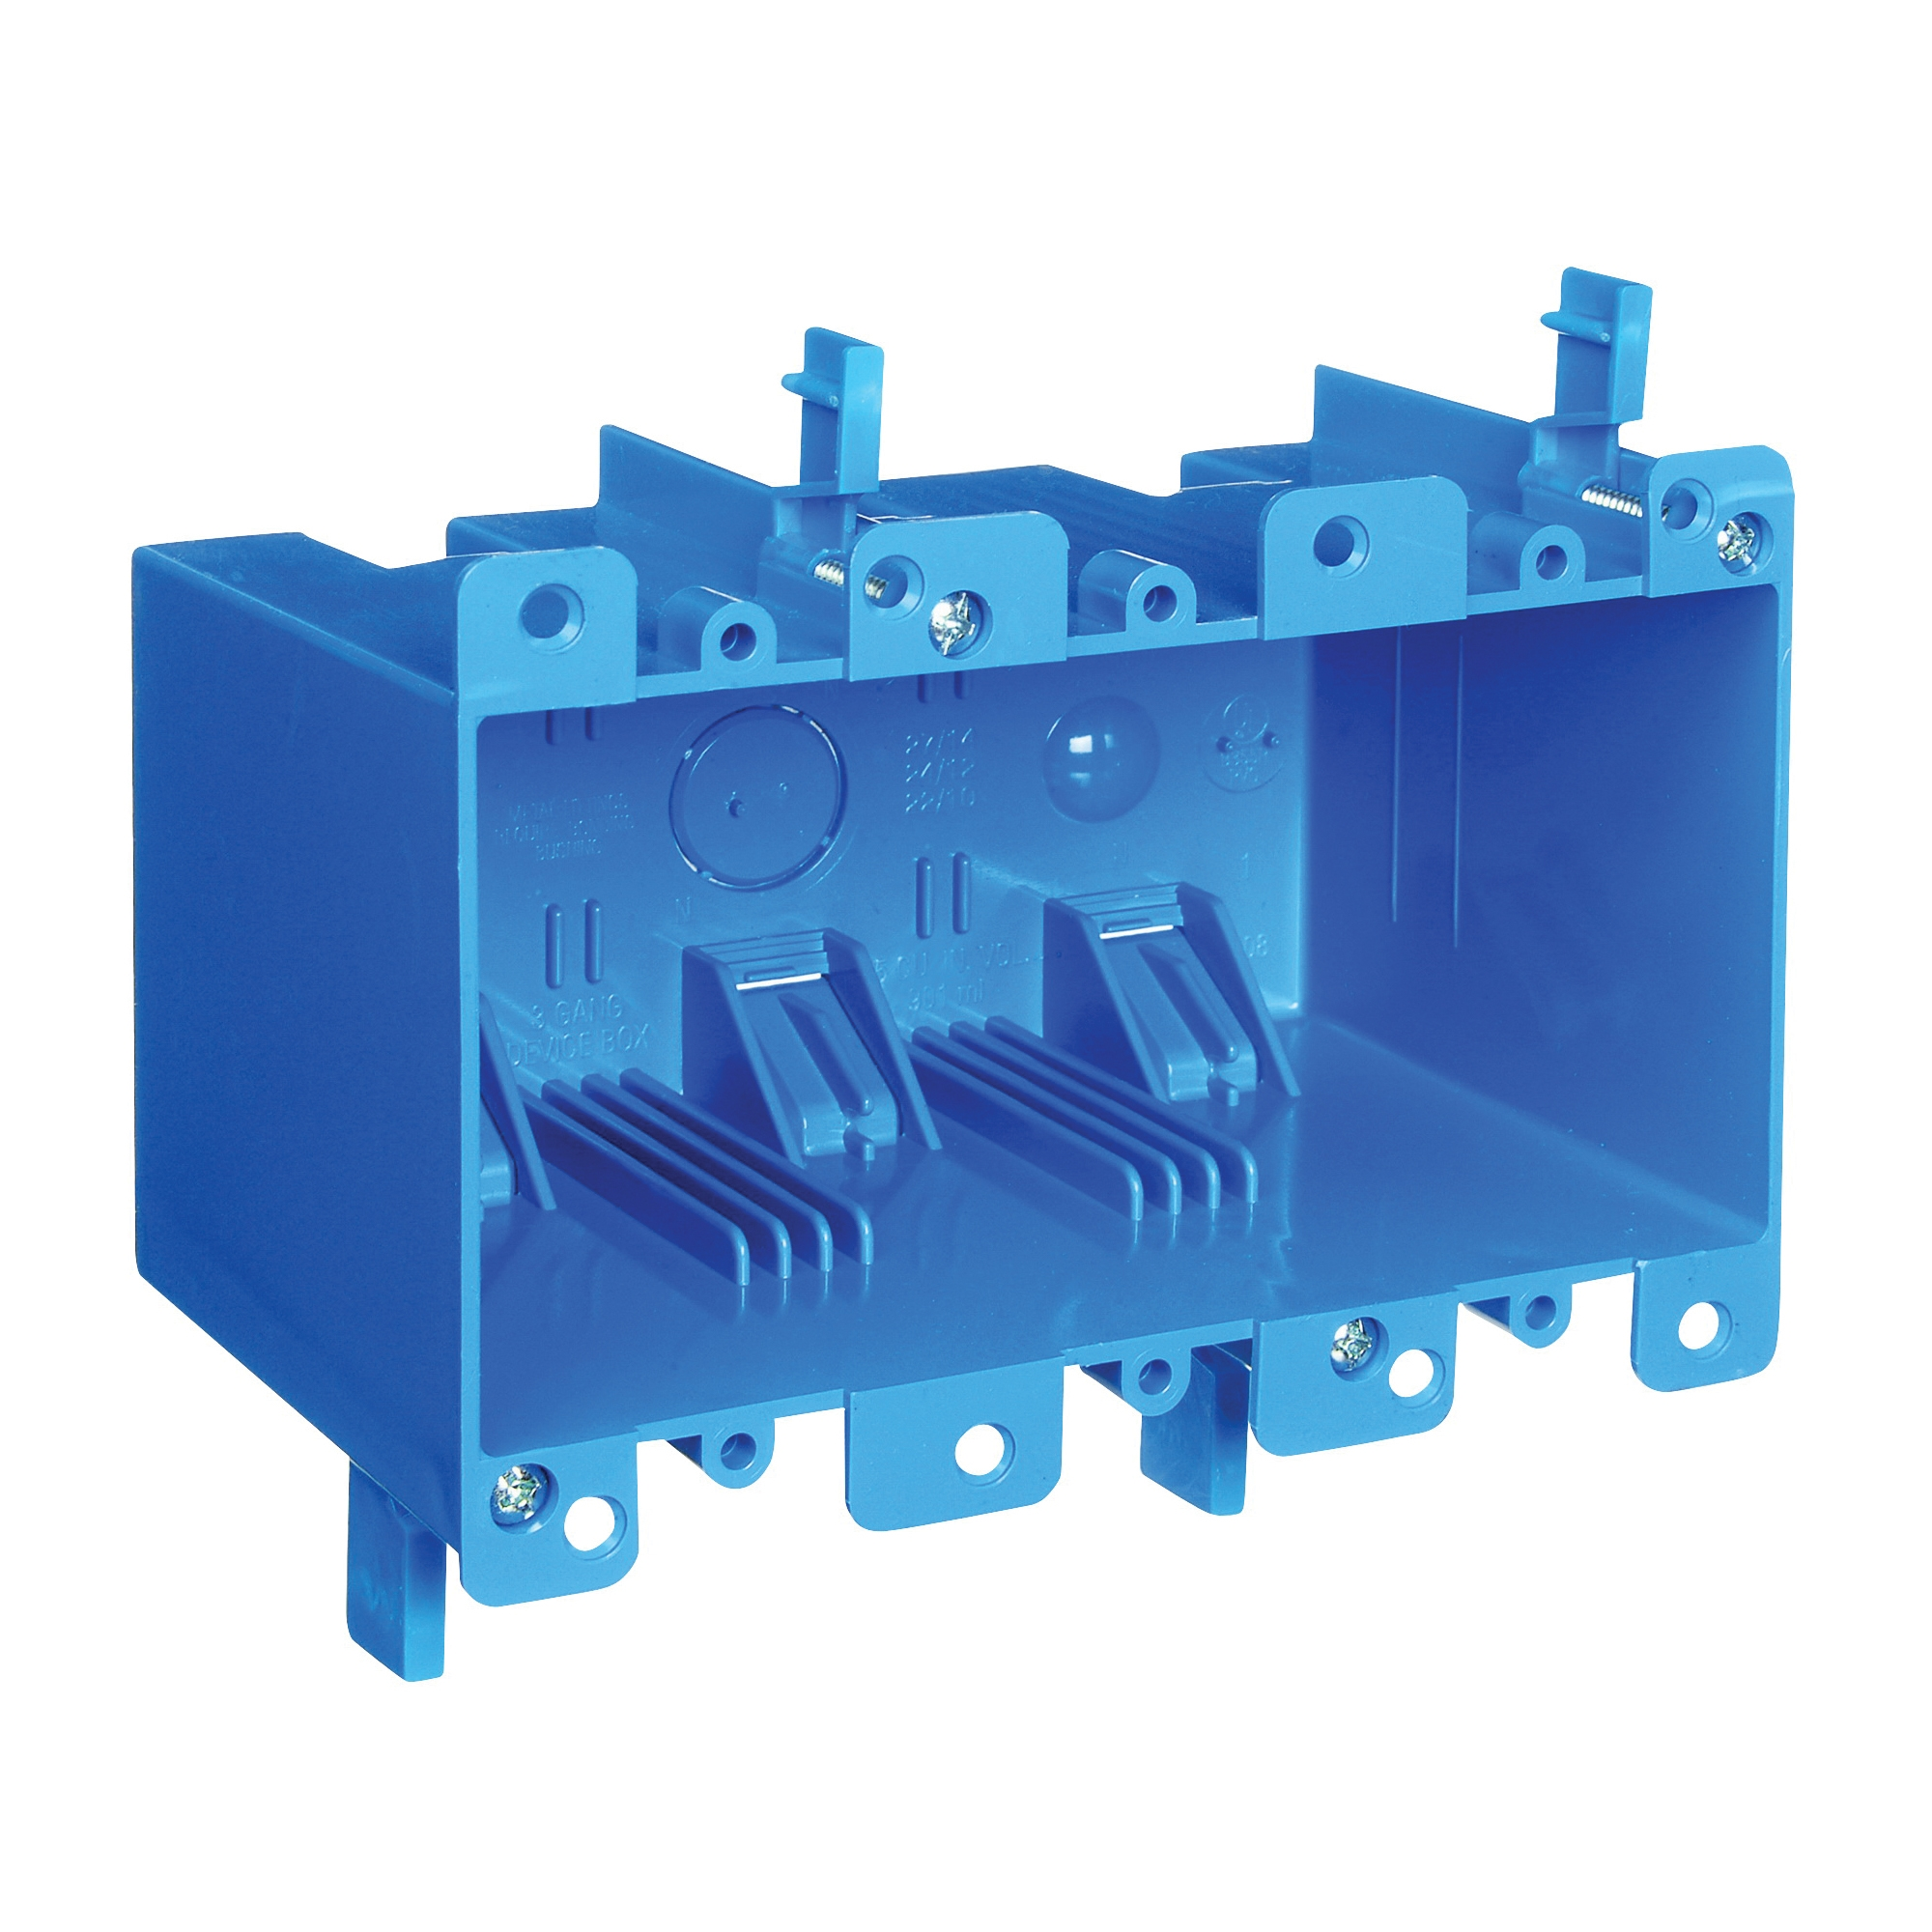 Picture of Carlon B355R Outlet Box, 3-Gang, PVC, Blue, Clamp Mounting